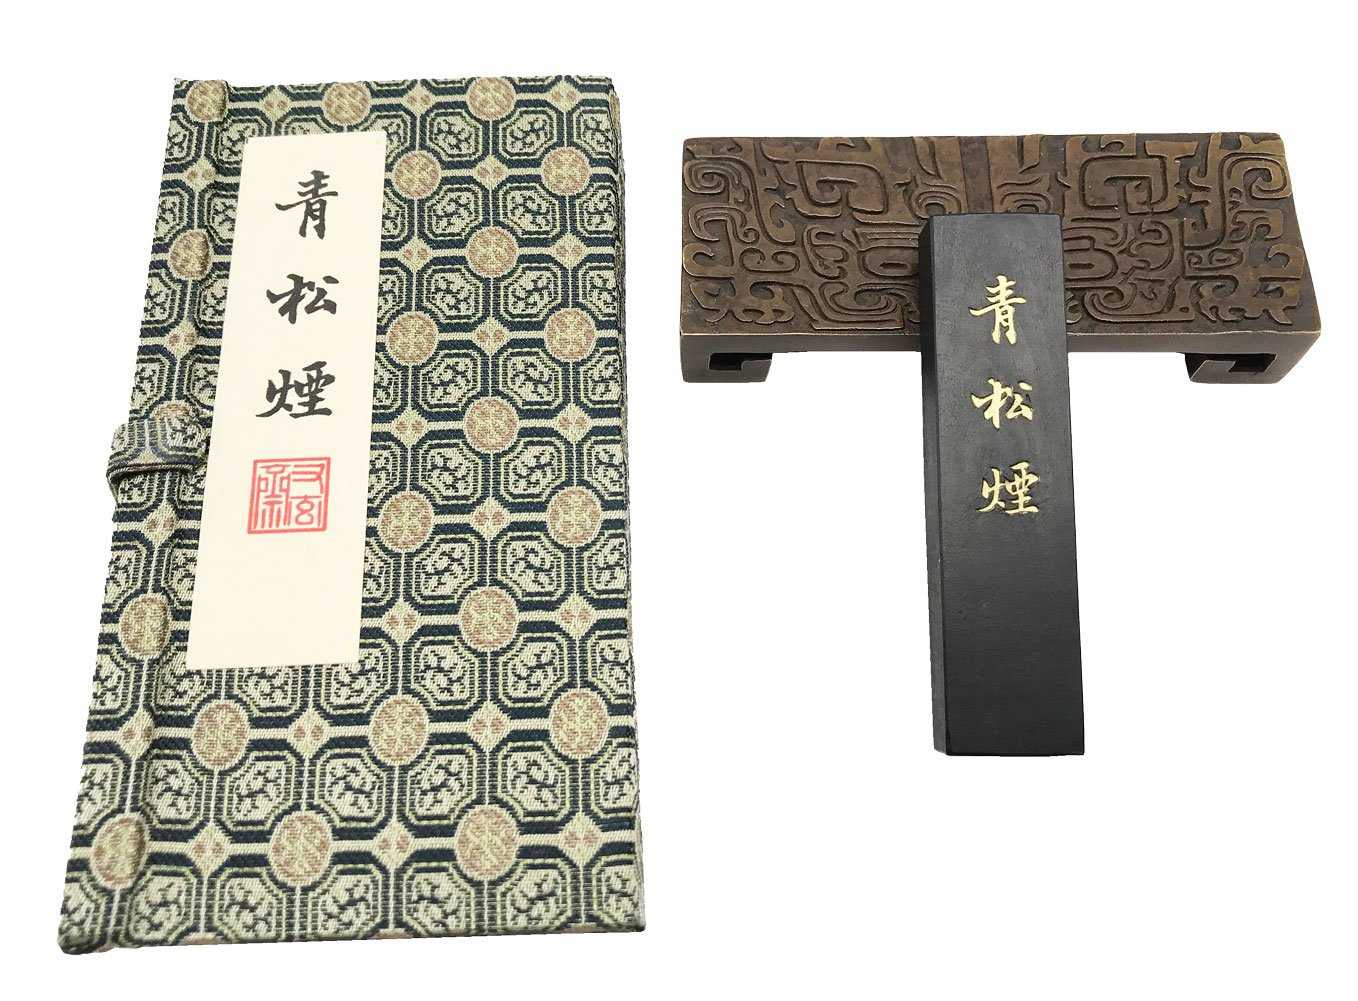 Easyou Youxuanzhai Ink Stick Refined Pine Soot in Ancient Tech for Chinese Japaness Calligraphy Painting QSY